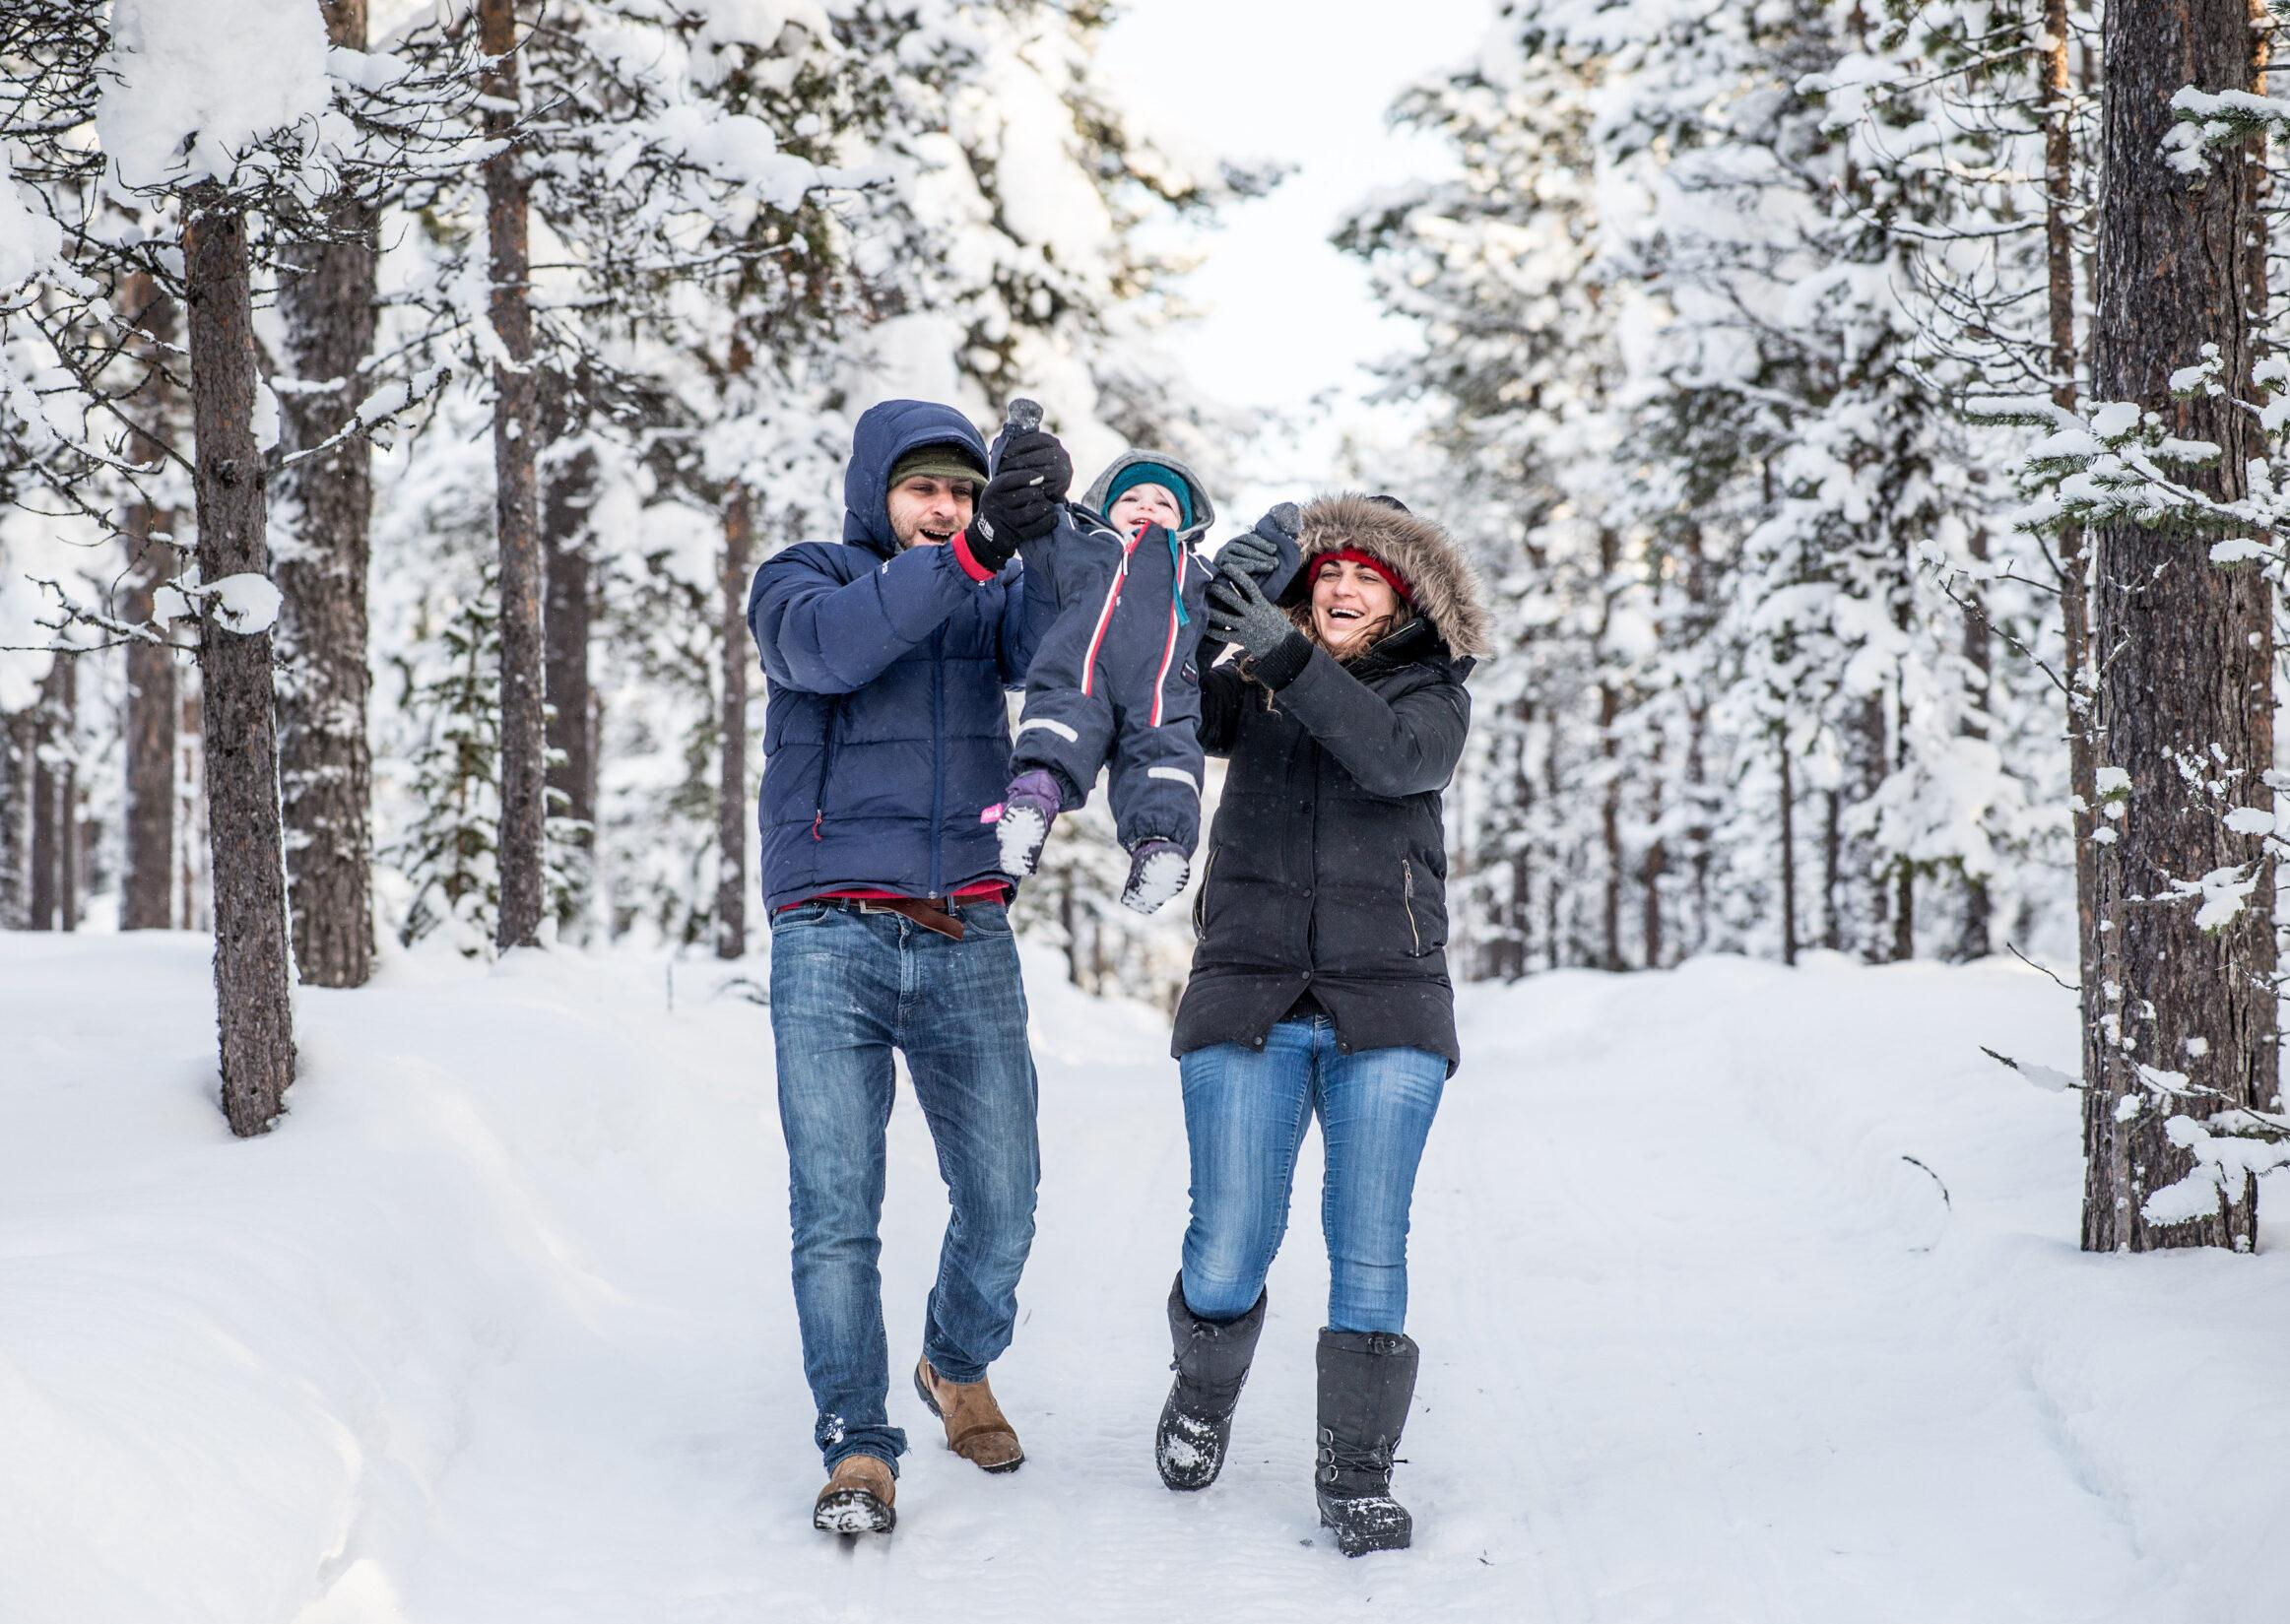 A man and a woman swings a toddler between them in a wintry forest landscape.